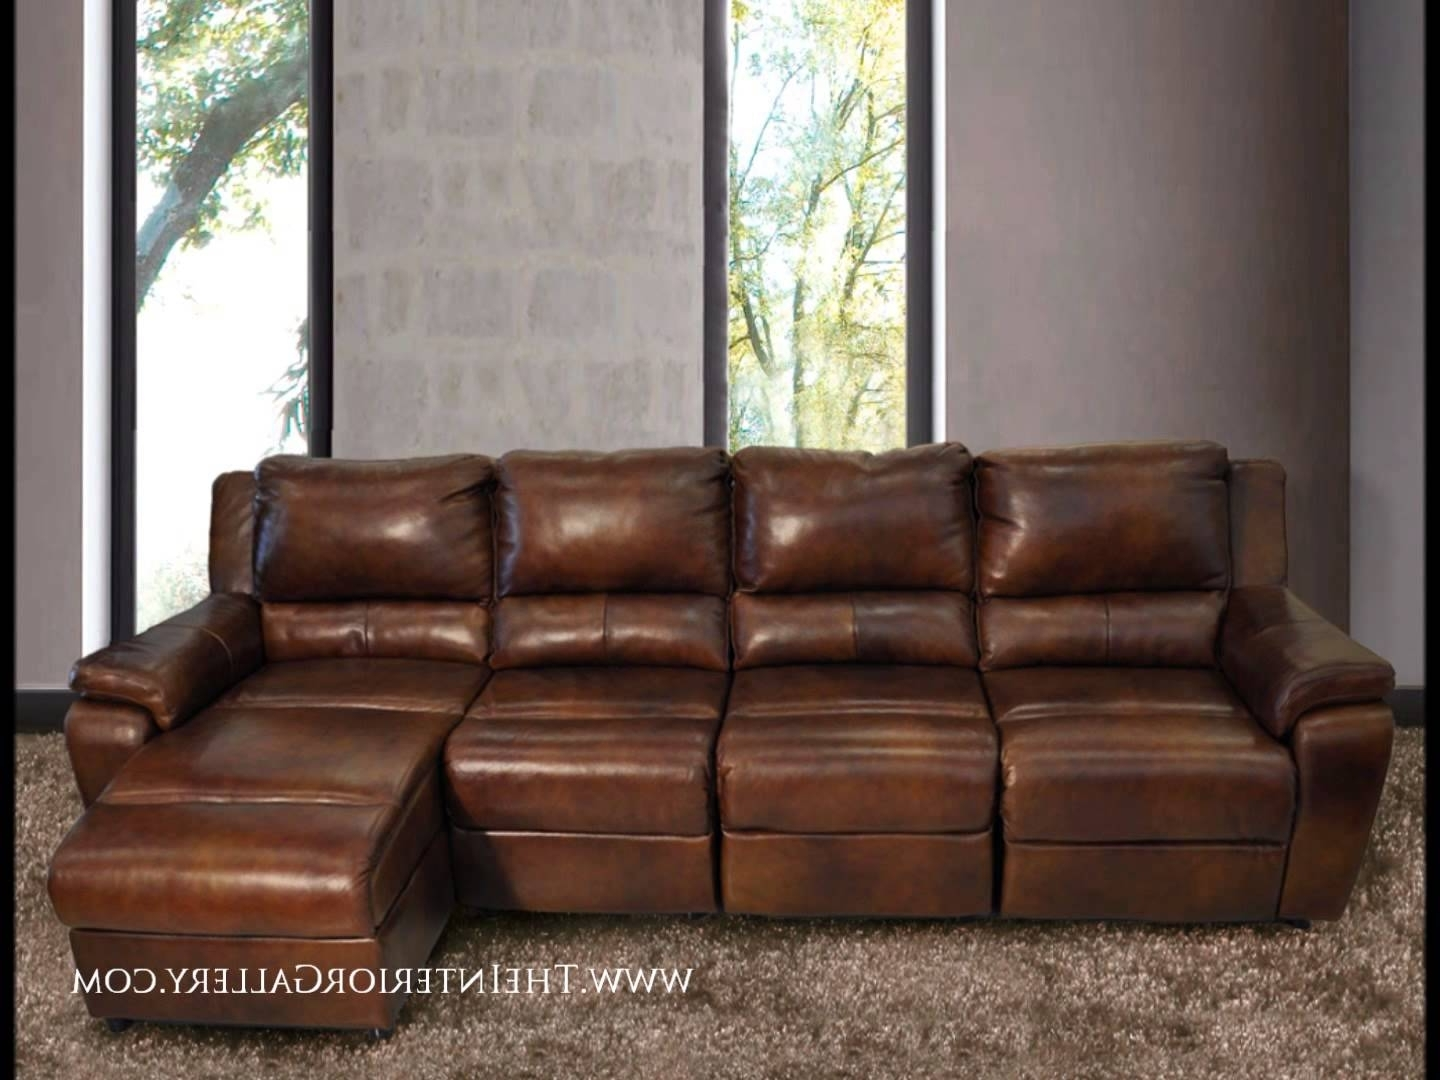 [%Modern Leather Sofa Set Genuine 100% Leather – Youtube With 2018 Genuine Leather Sectionals With Chaise|Genuine Leather Sectionals With Chaise Intended For Most Recent Modern Leather Sofa Set Genuine 100% Leather – Youtube|Trendy Genuine Leather Sectionals With Chaise Intended For Modern Leather Sofa Set Genuine 100% Leather – Youtube|Most Up To Date Modern Leather Sofa Set Genuine 100% Leather – Youtube Throughout Genuine Leather Sectionals With Chaise%] (View 13 of 15)